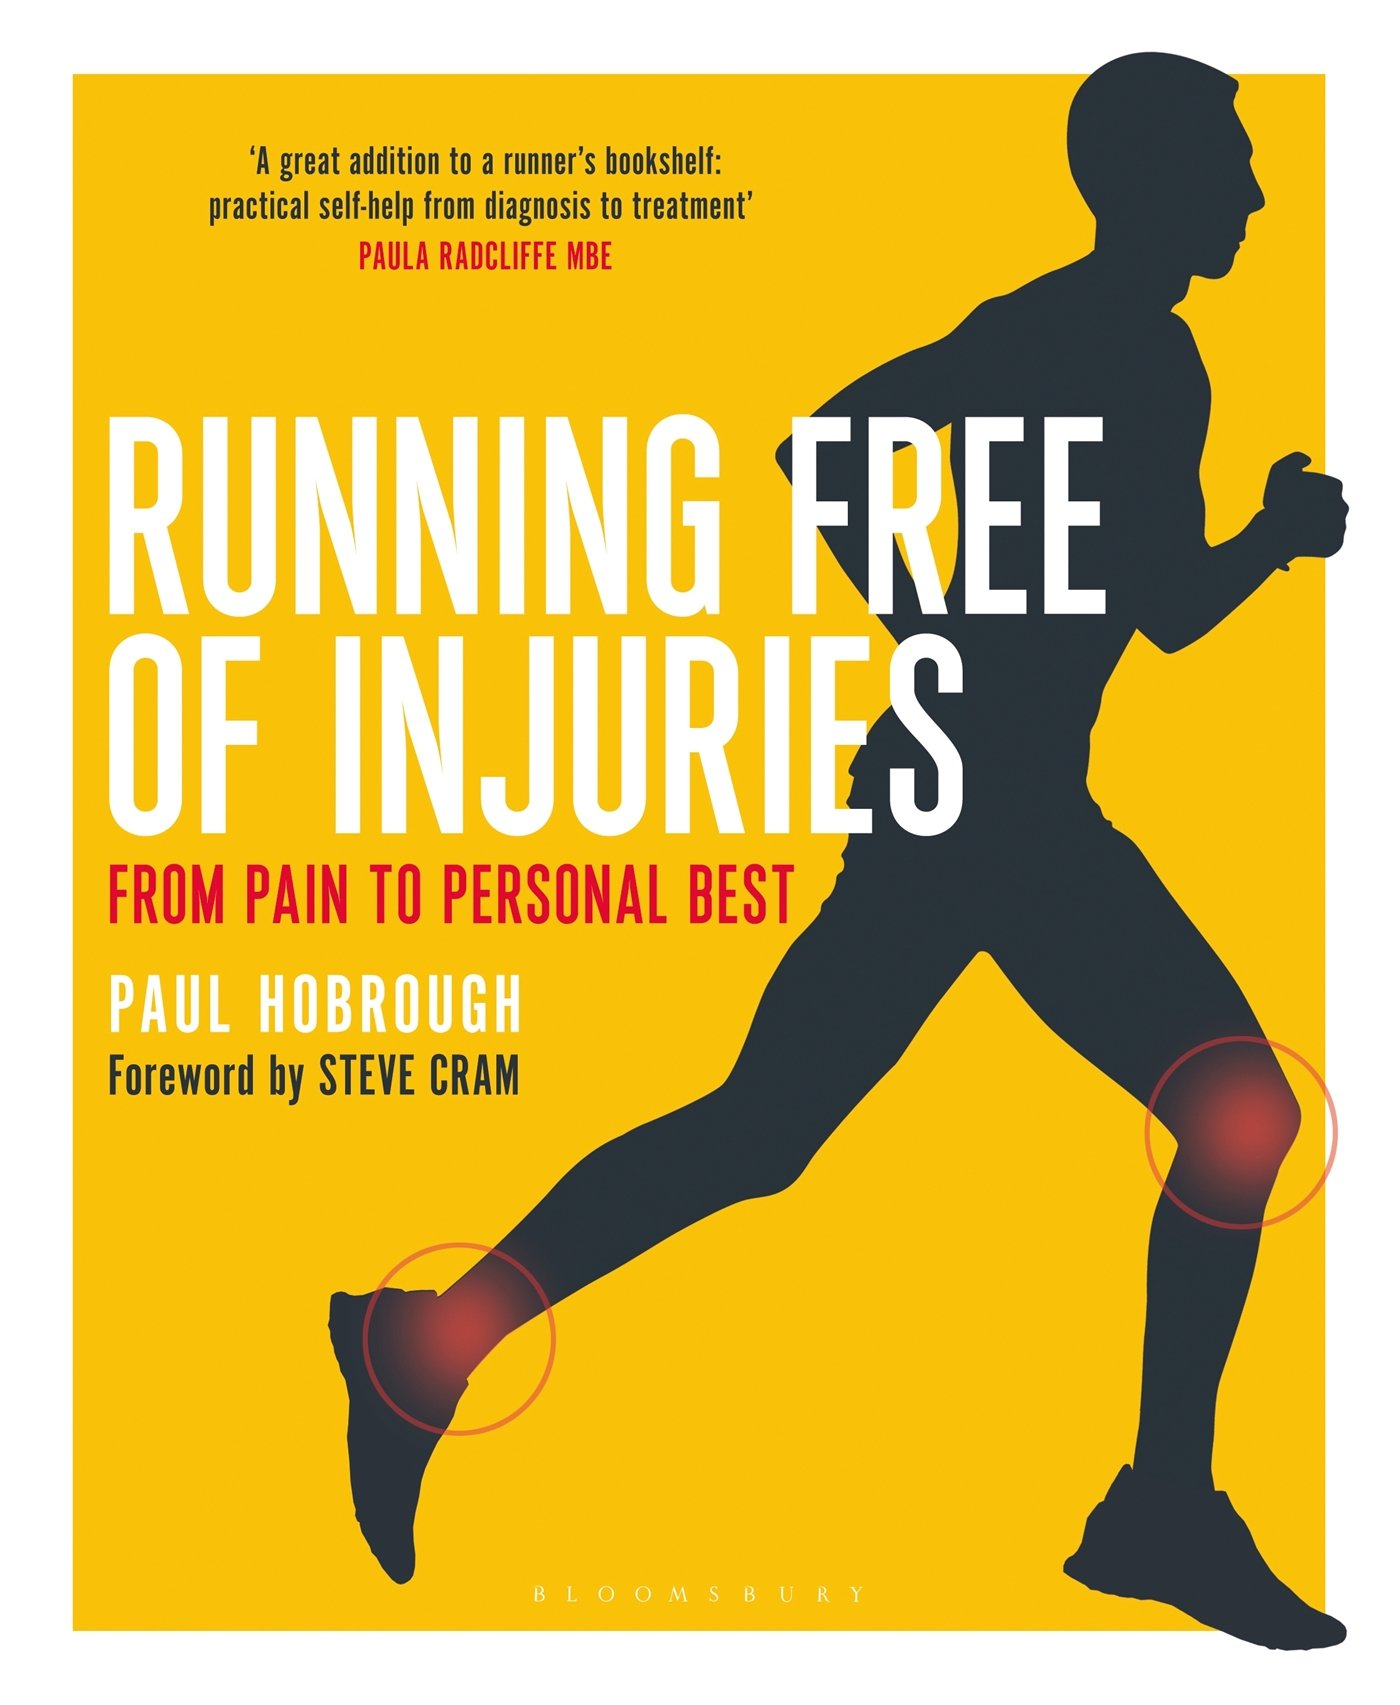 Image OfRunning Free Of Injuries: From Pain To Personal Best